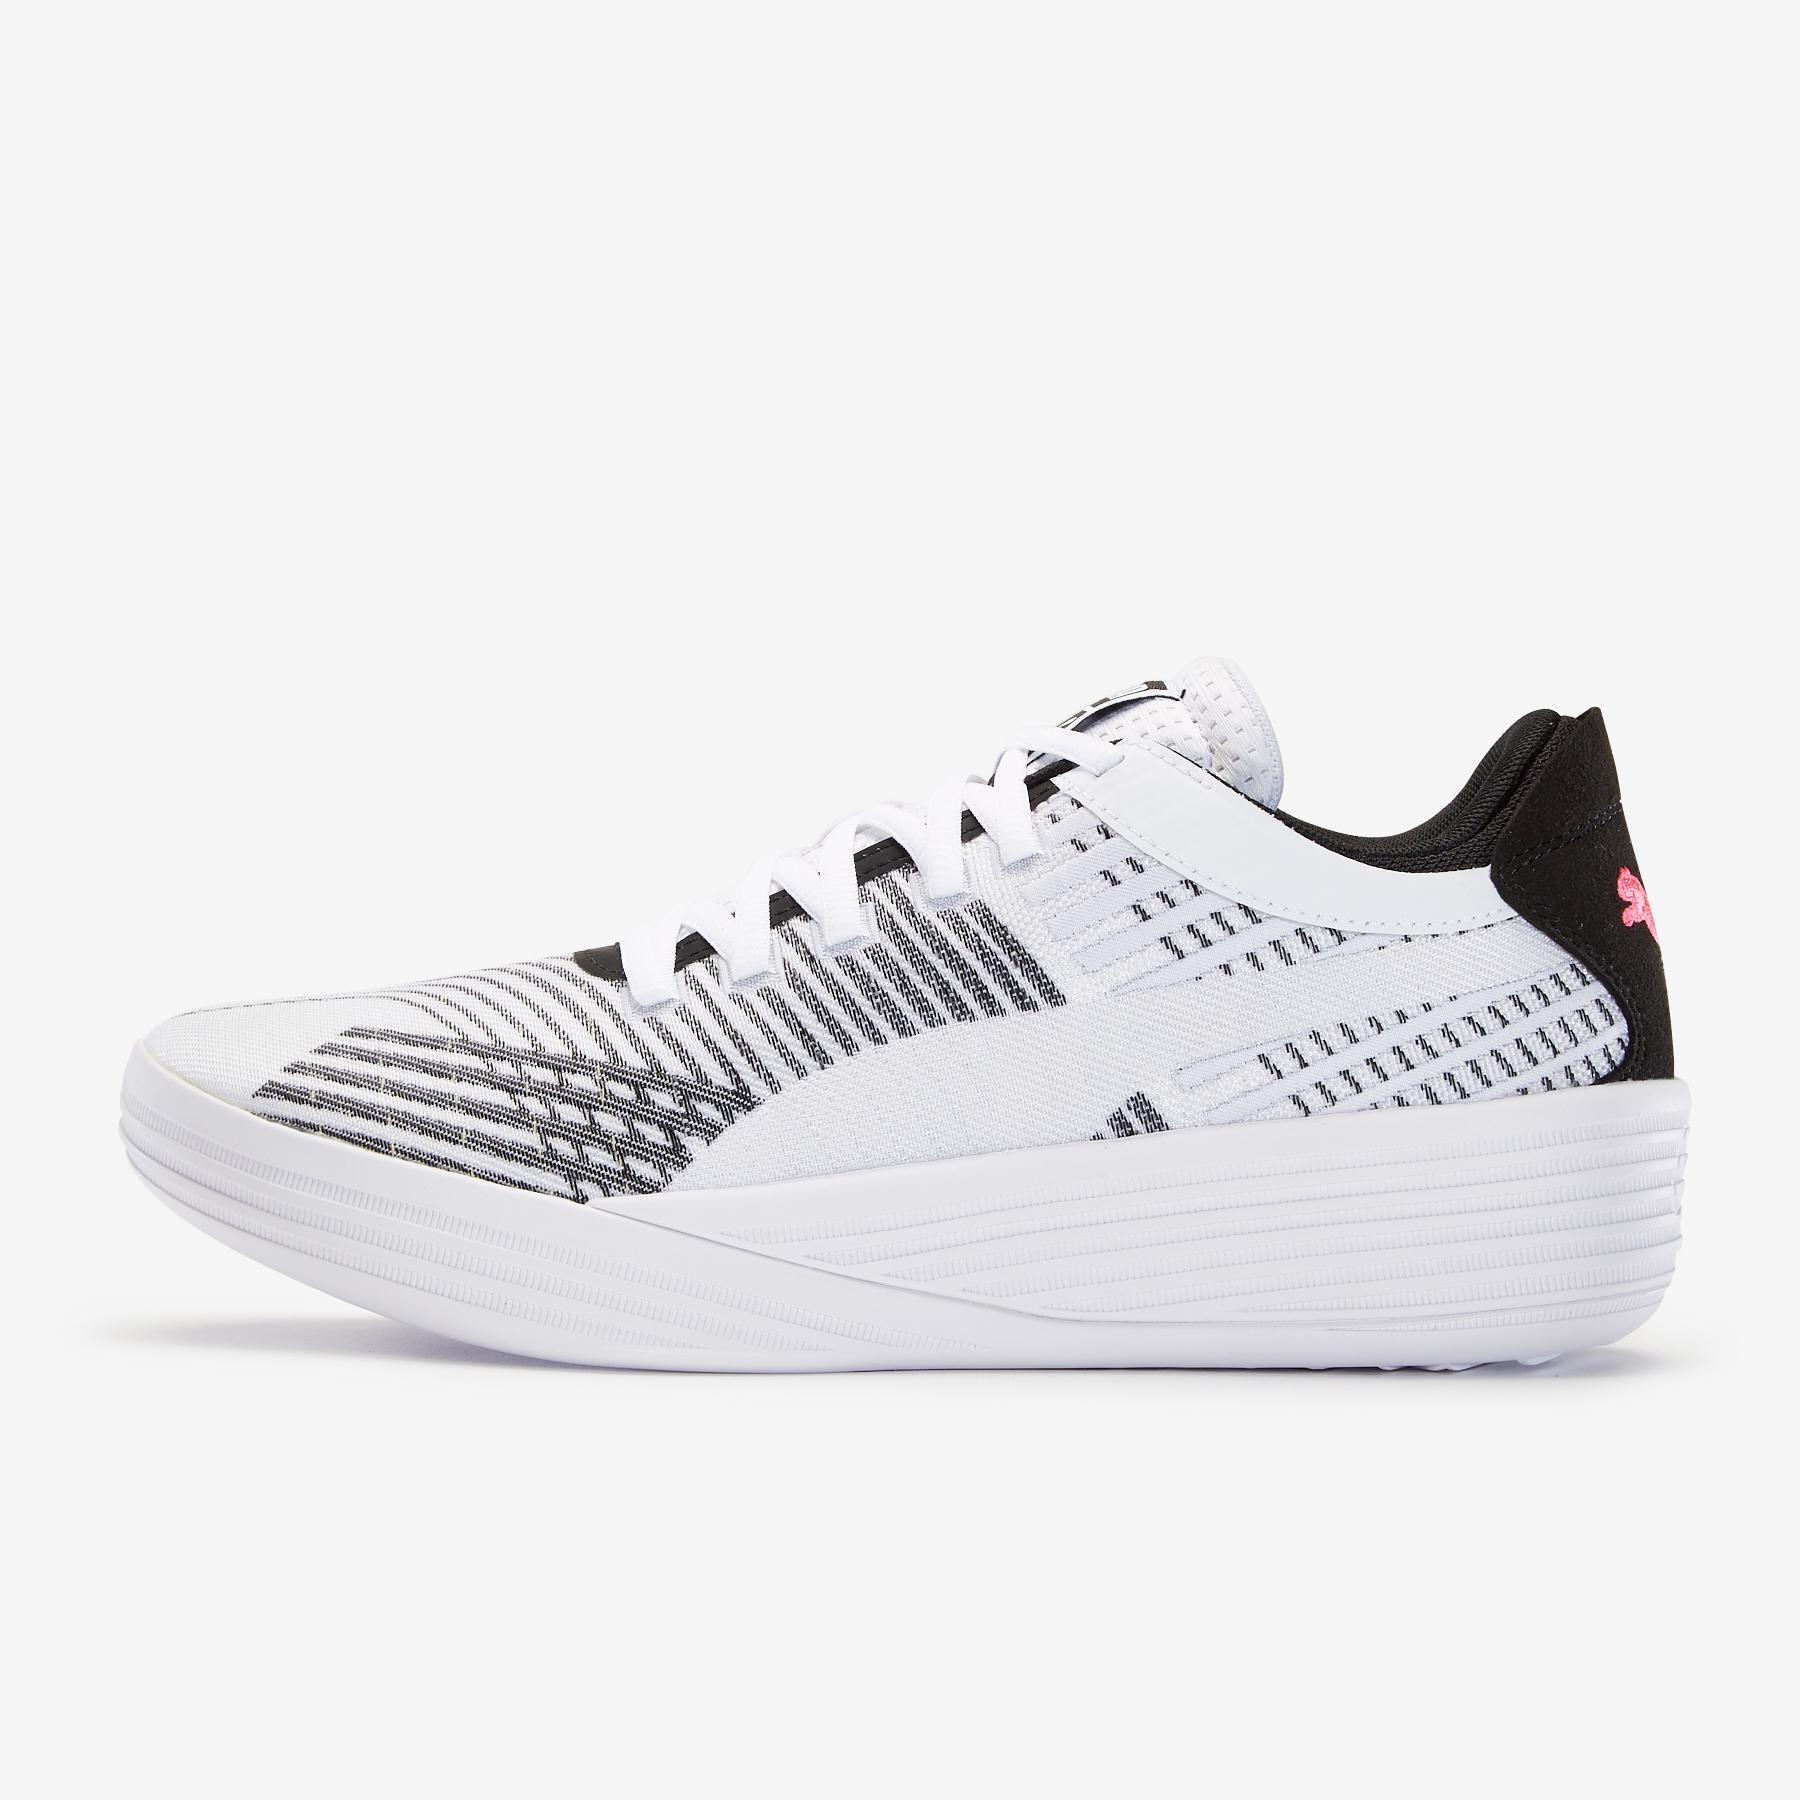 Men's Clyde All- Pro Basketball Shoes